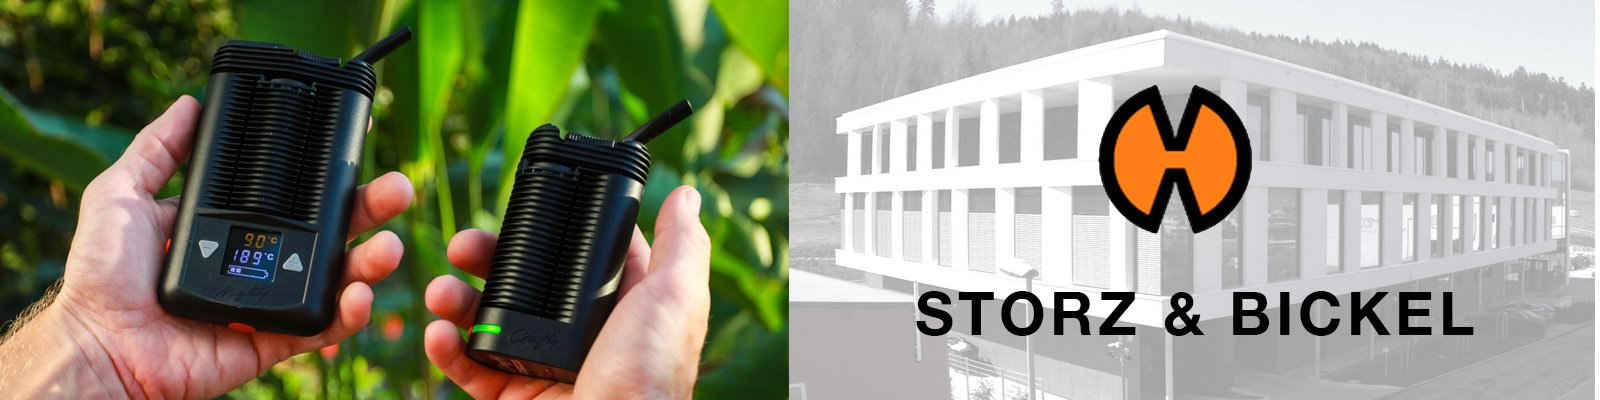 Storz & Bickel Vaporizers and Building